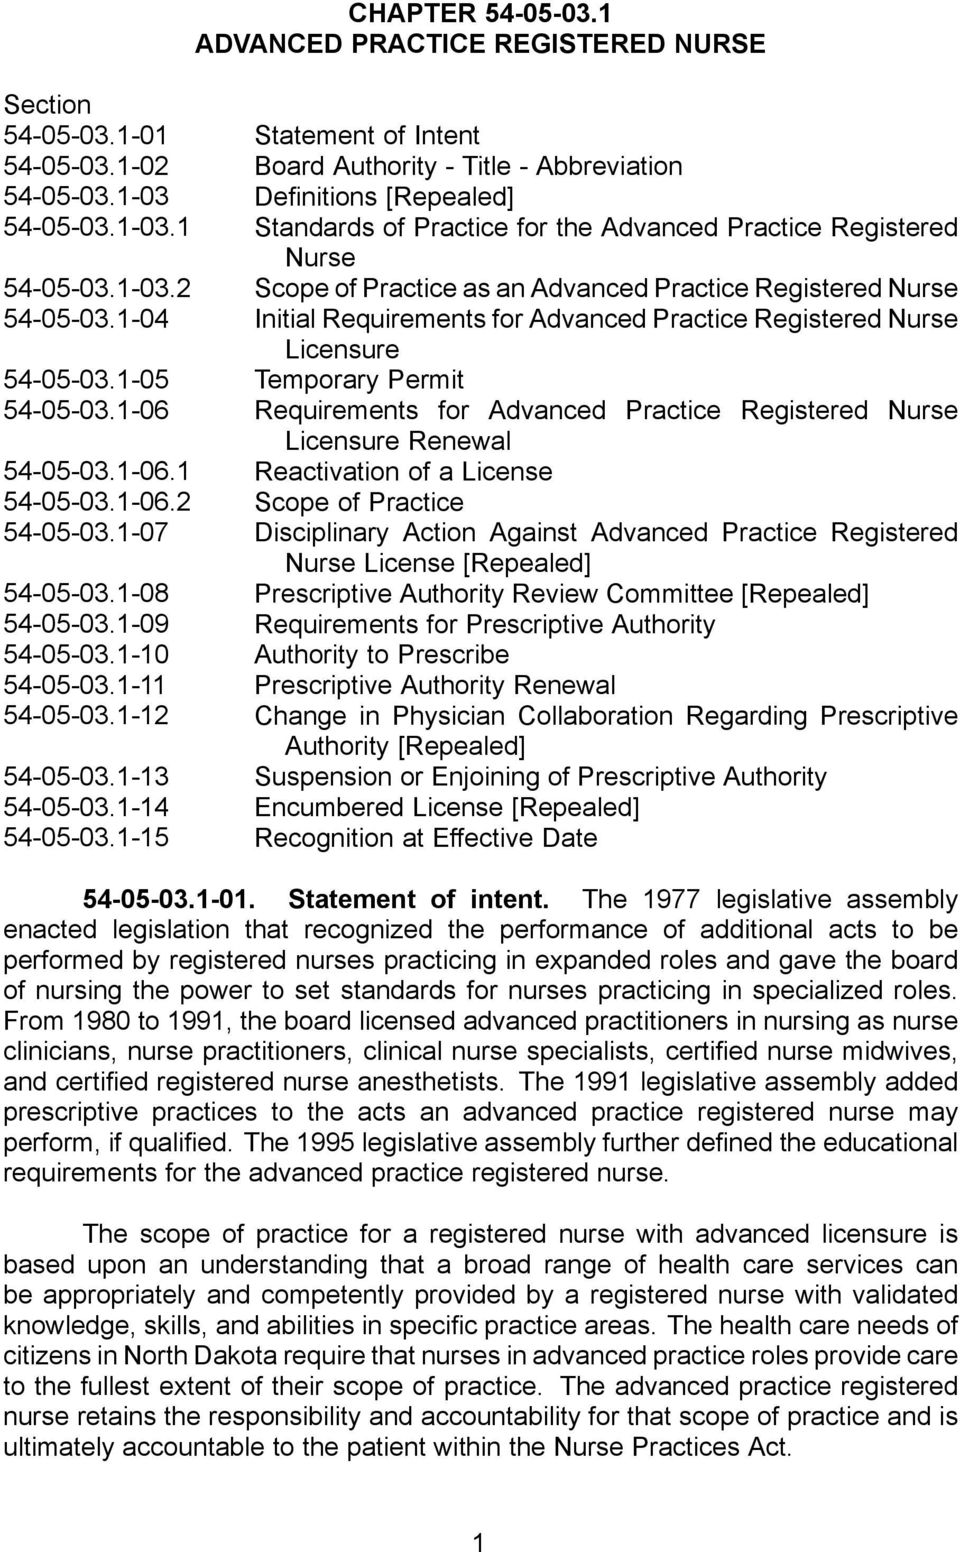 1-04 Initial Requirements for Advanced Practice Registered Nurse Licensure 54-05-03.1-05 Temporary Permit 54-05-03.1-06 Requirements for Advanced Practice Registered Nurse Licensure Renewal 54-05-03.